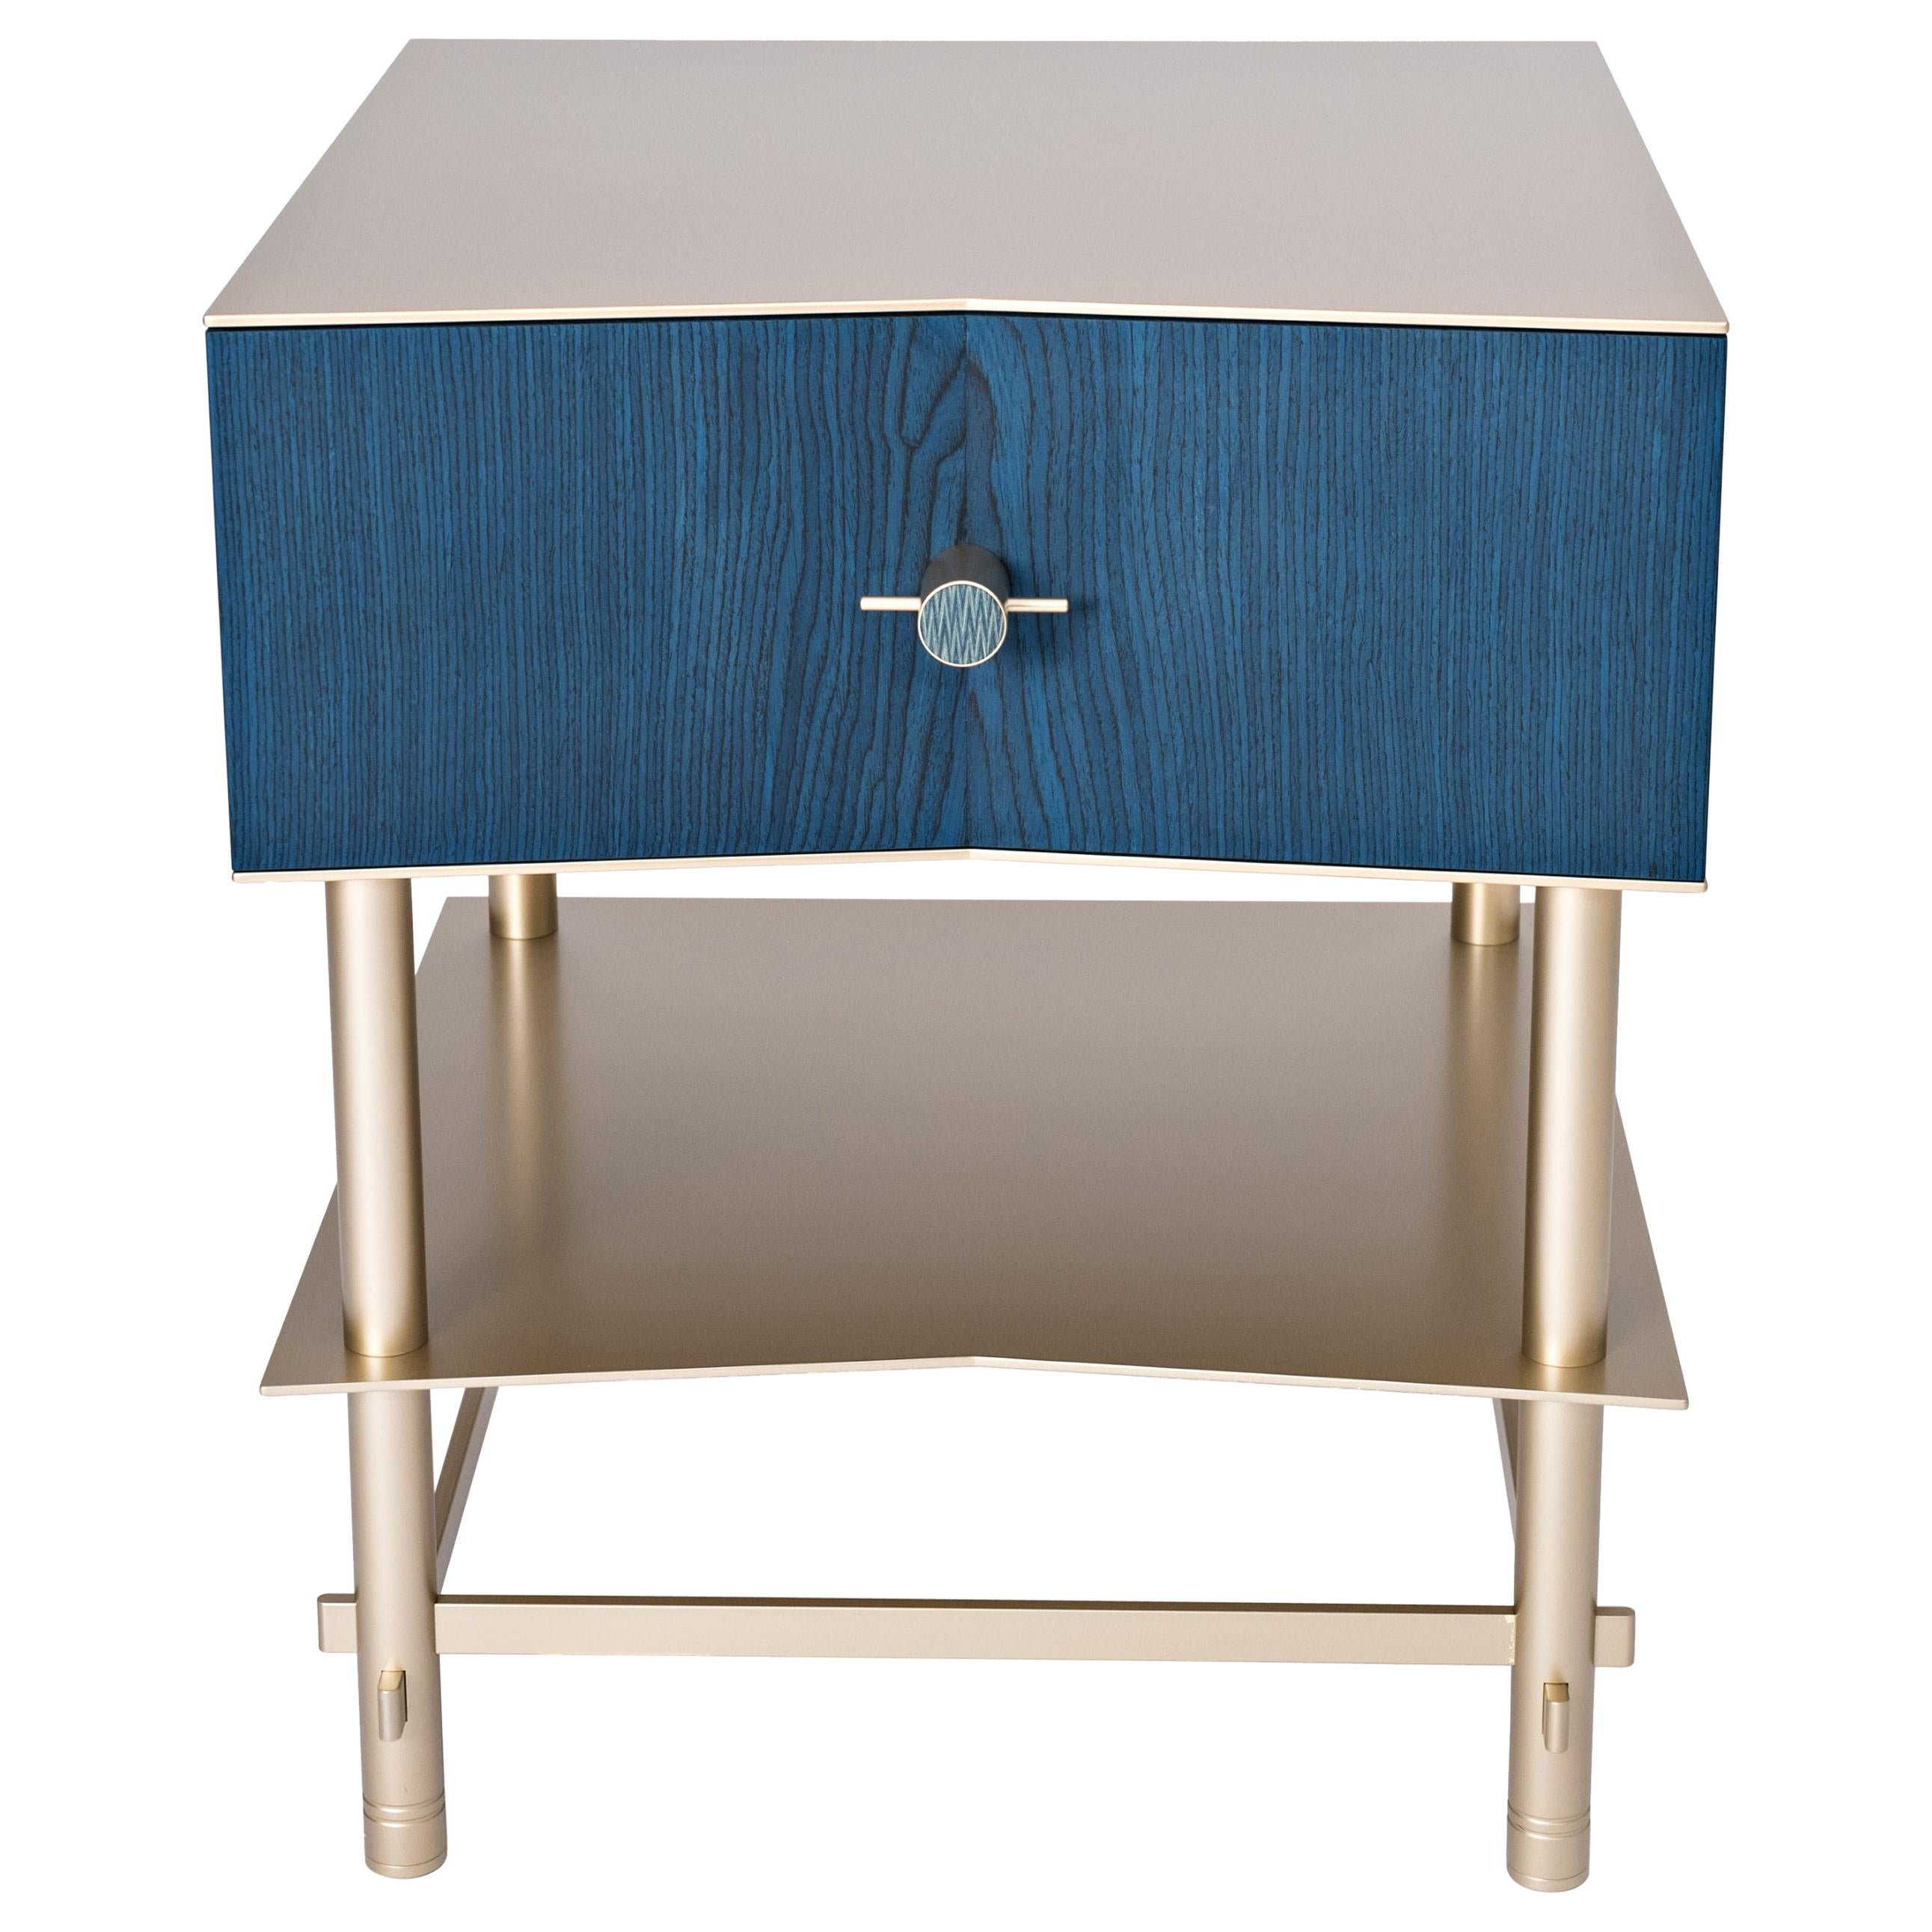 Lali Luxury Coffee Bed Side Table Metal Structure Jewel Handles And Wooden Drawer For Sale At 1stdibs